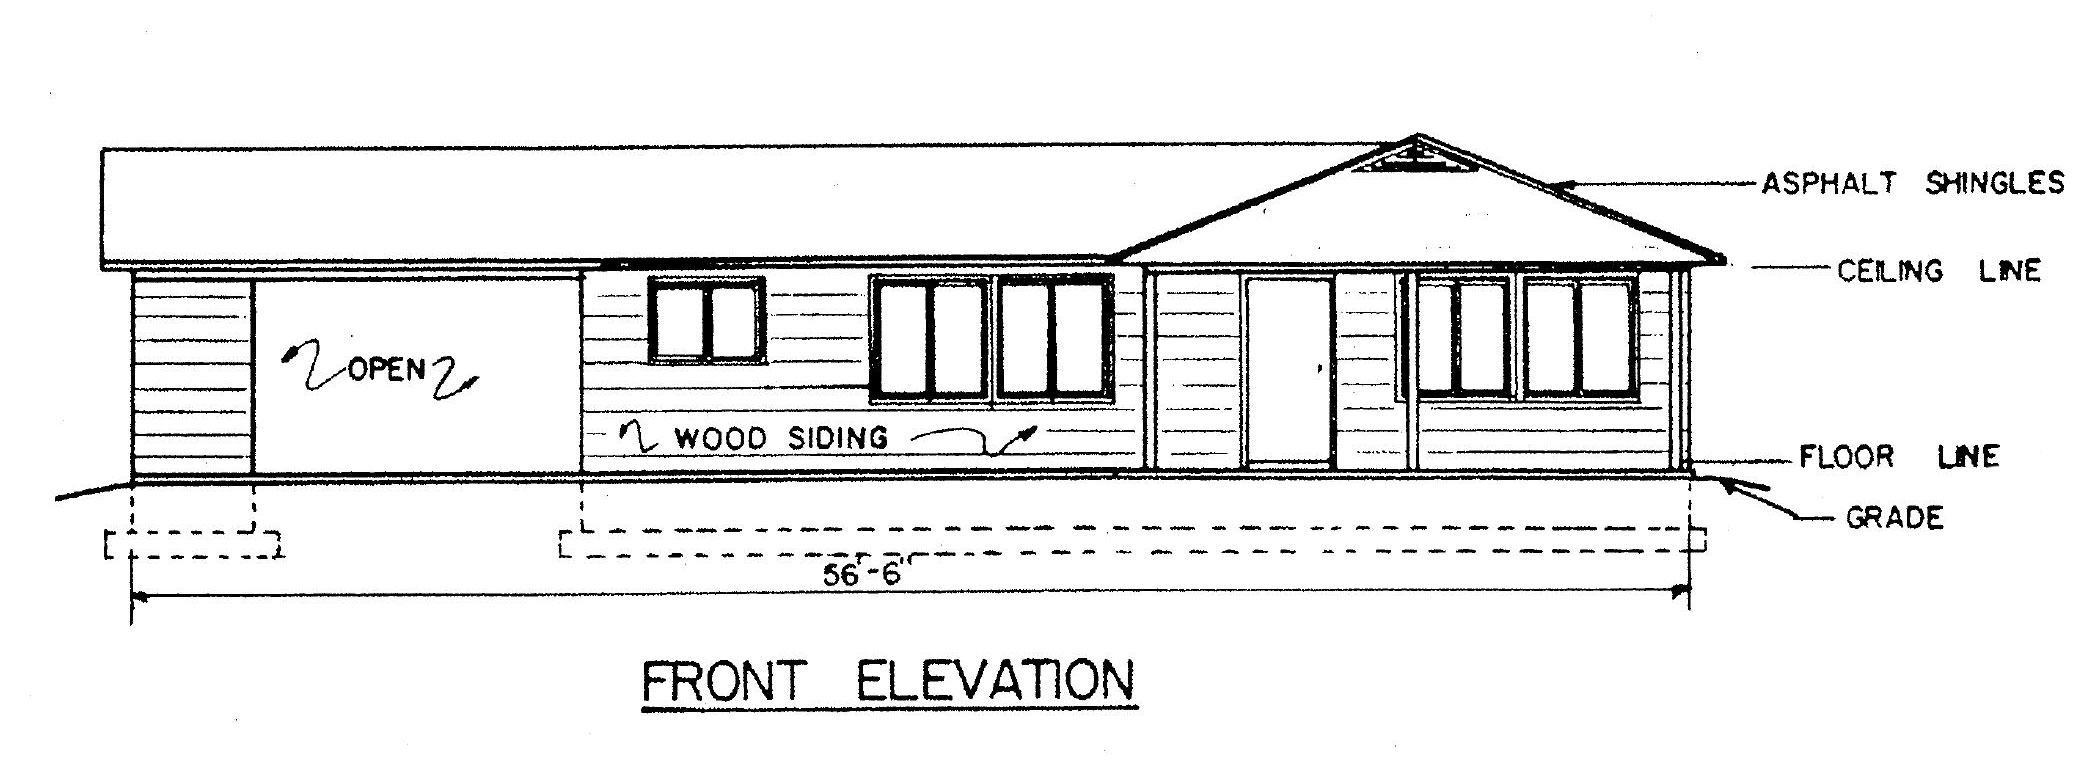 basic house plans 2 bedrooms eddiemcgradycom - Simple House Plan With 2 Bedrooms